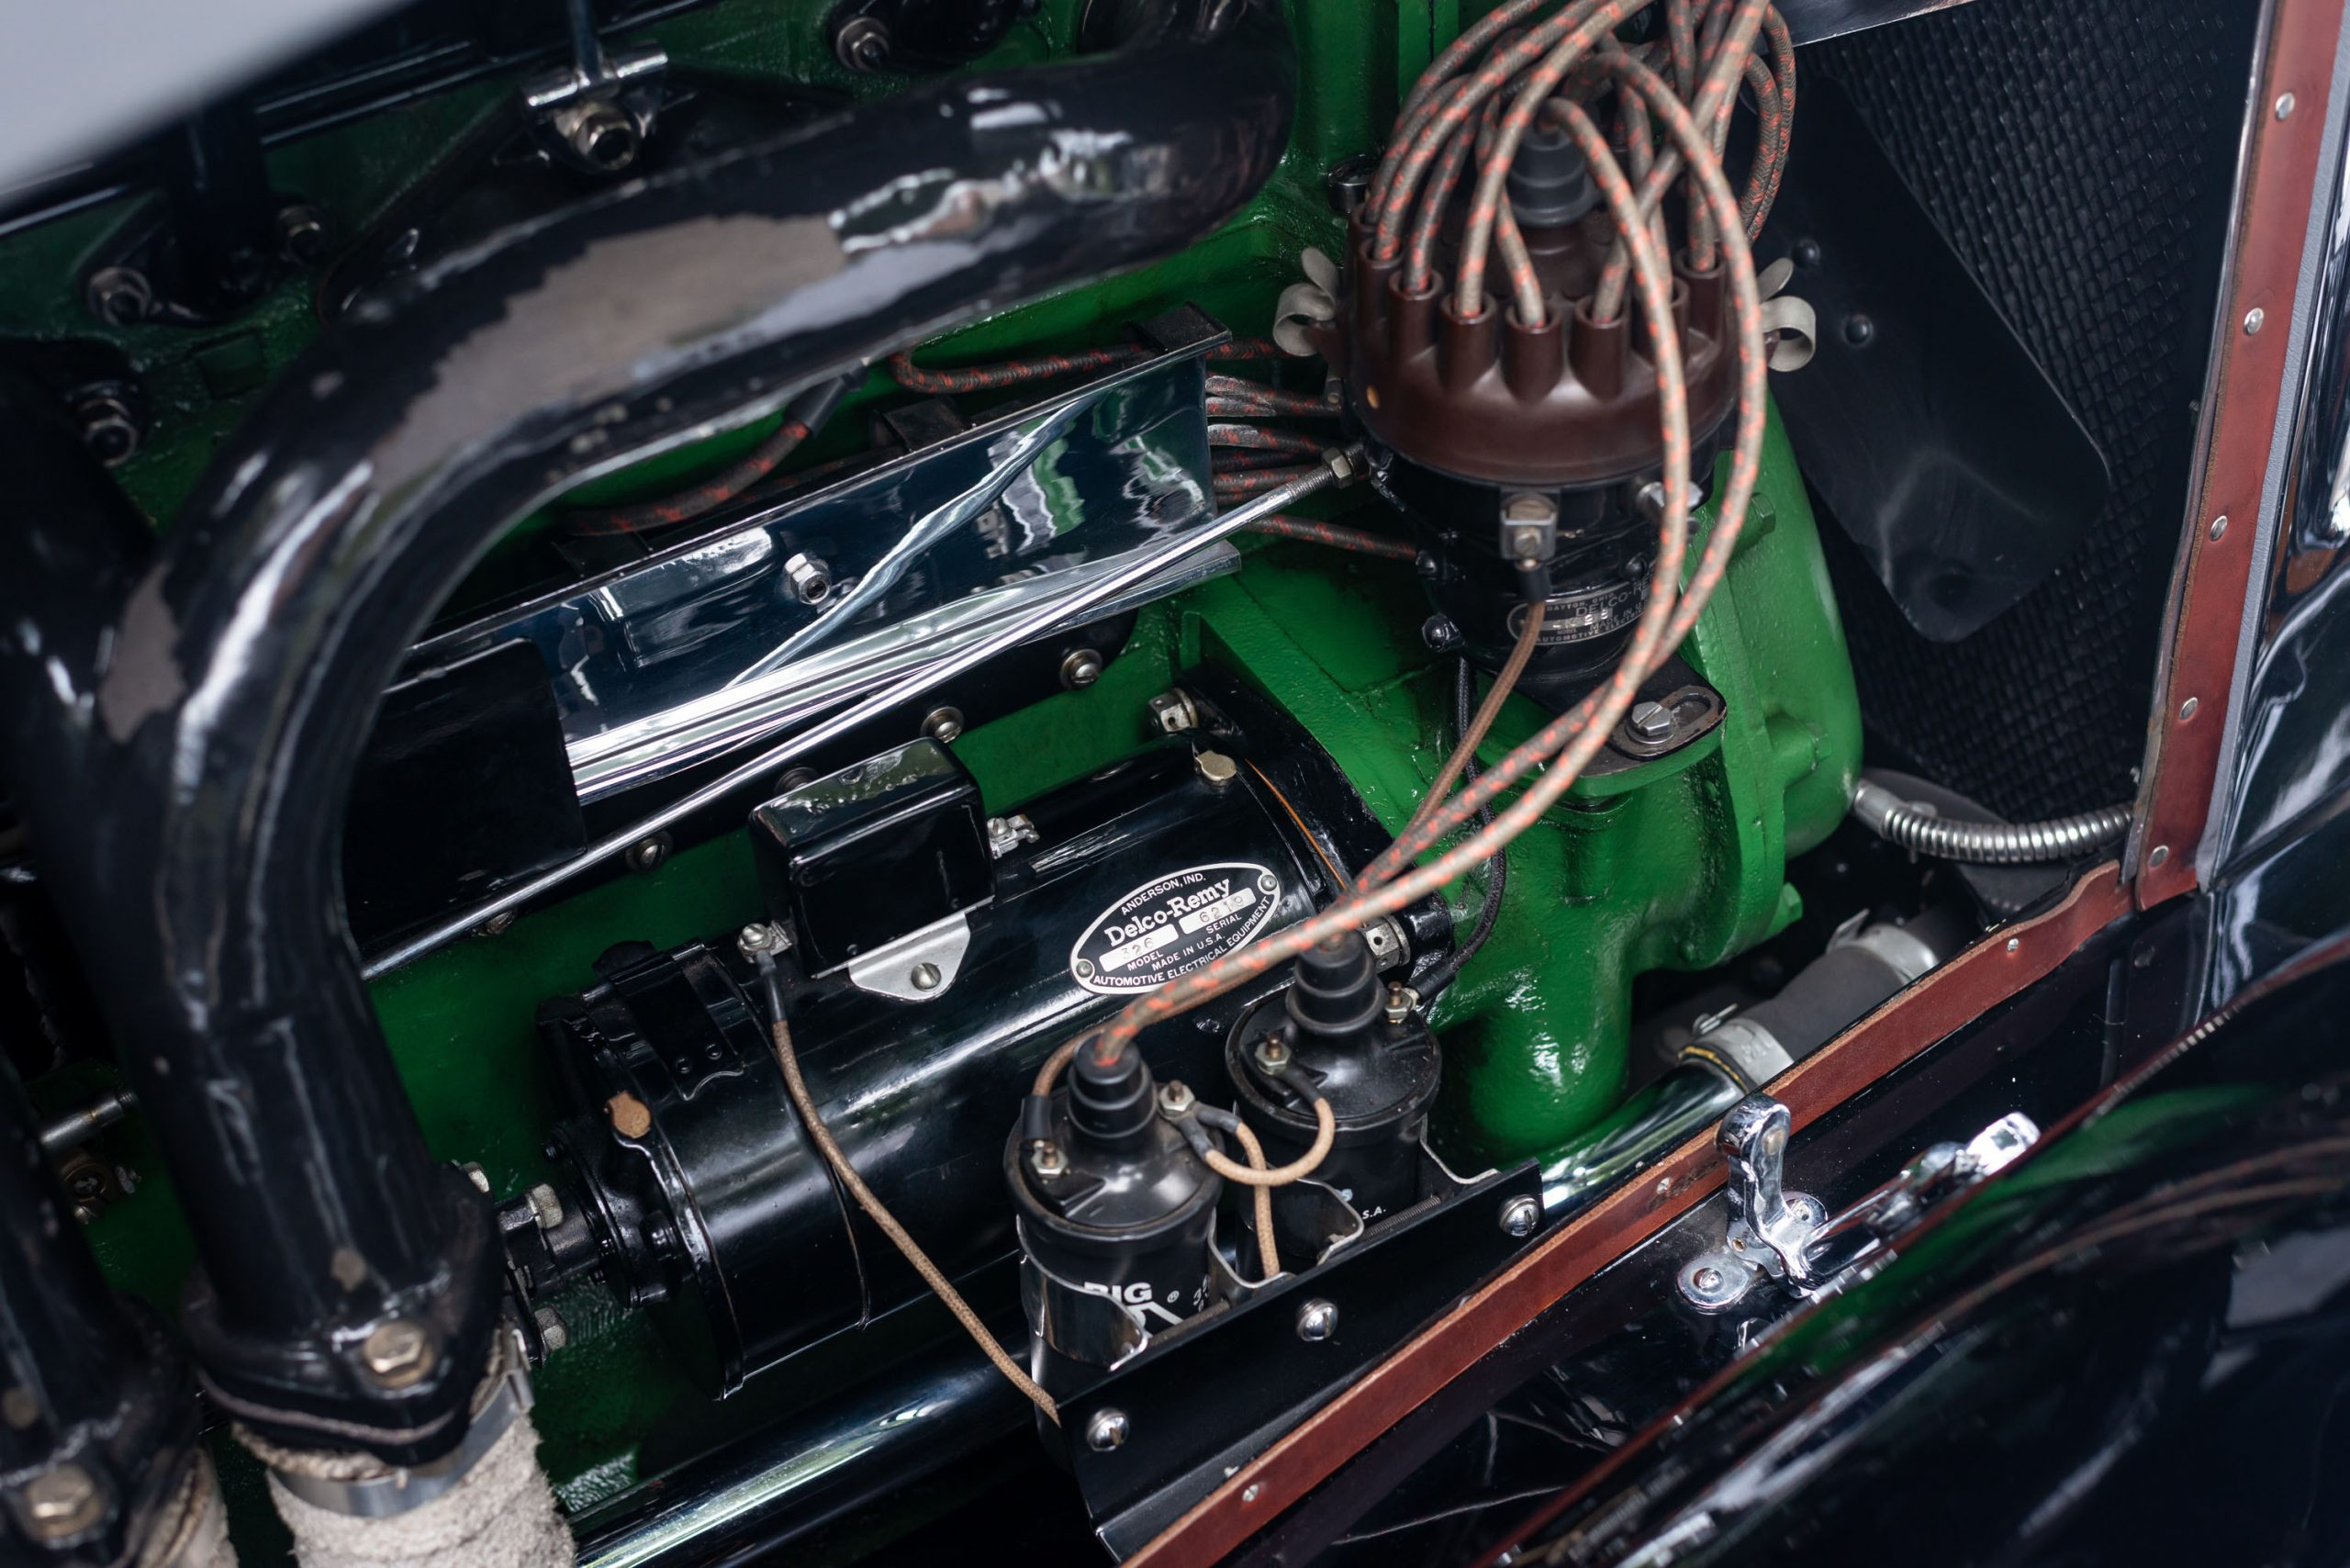 1930 Stutz Model MB Monte Carlo by Weymann engine